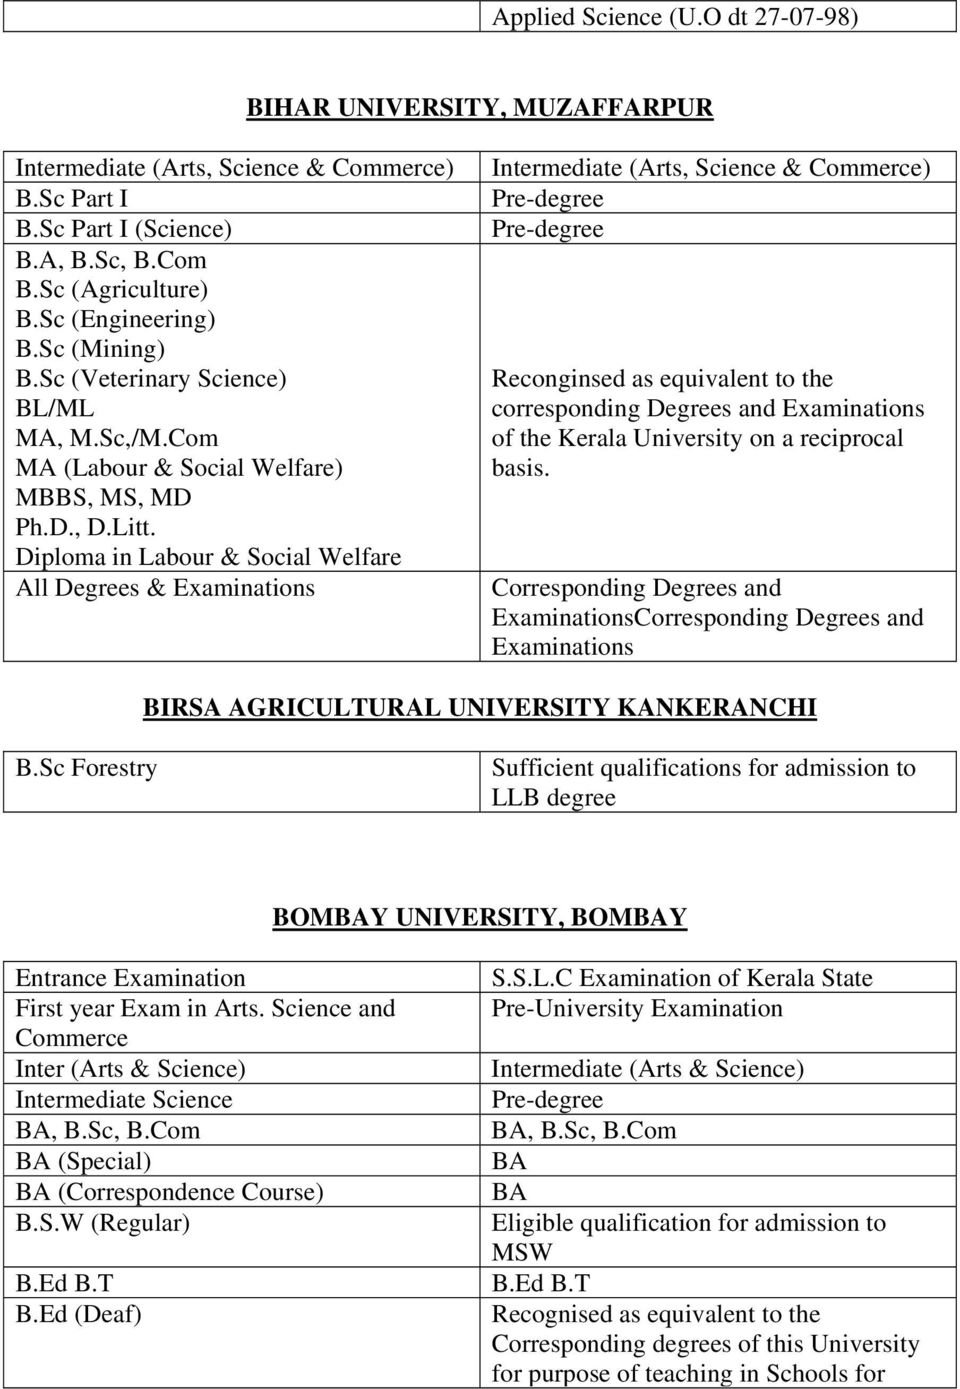 Diploma in Labour & Social Welfare All Degrees & Examinations Intermediate (Arts, Science & Commerce) Reconginsed as equivalent to the corresponding Degrees and Examinations of the Kerala University